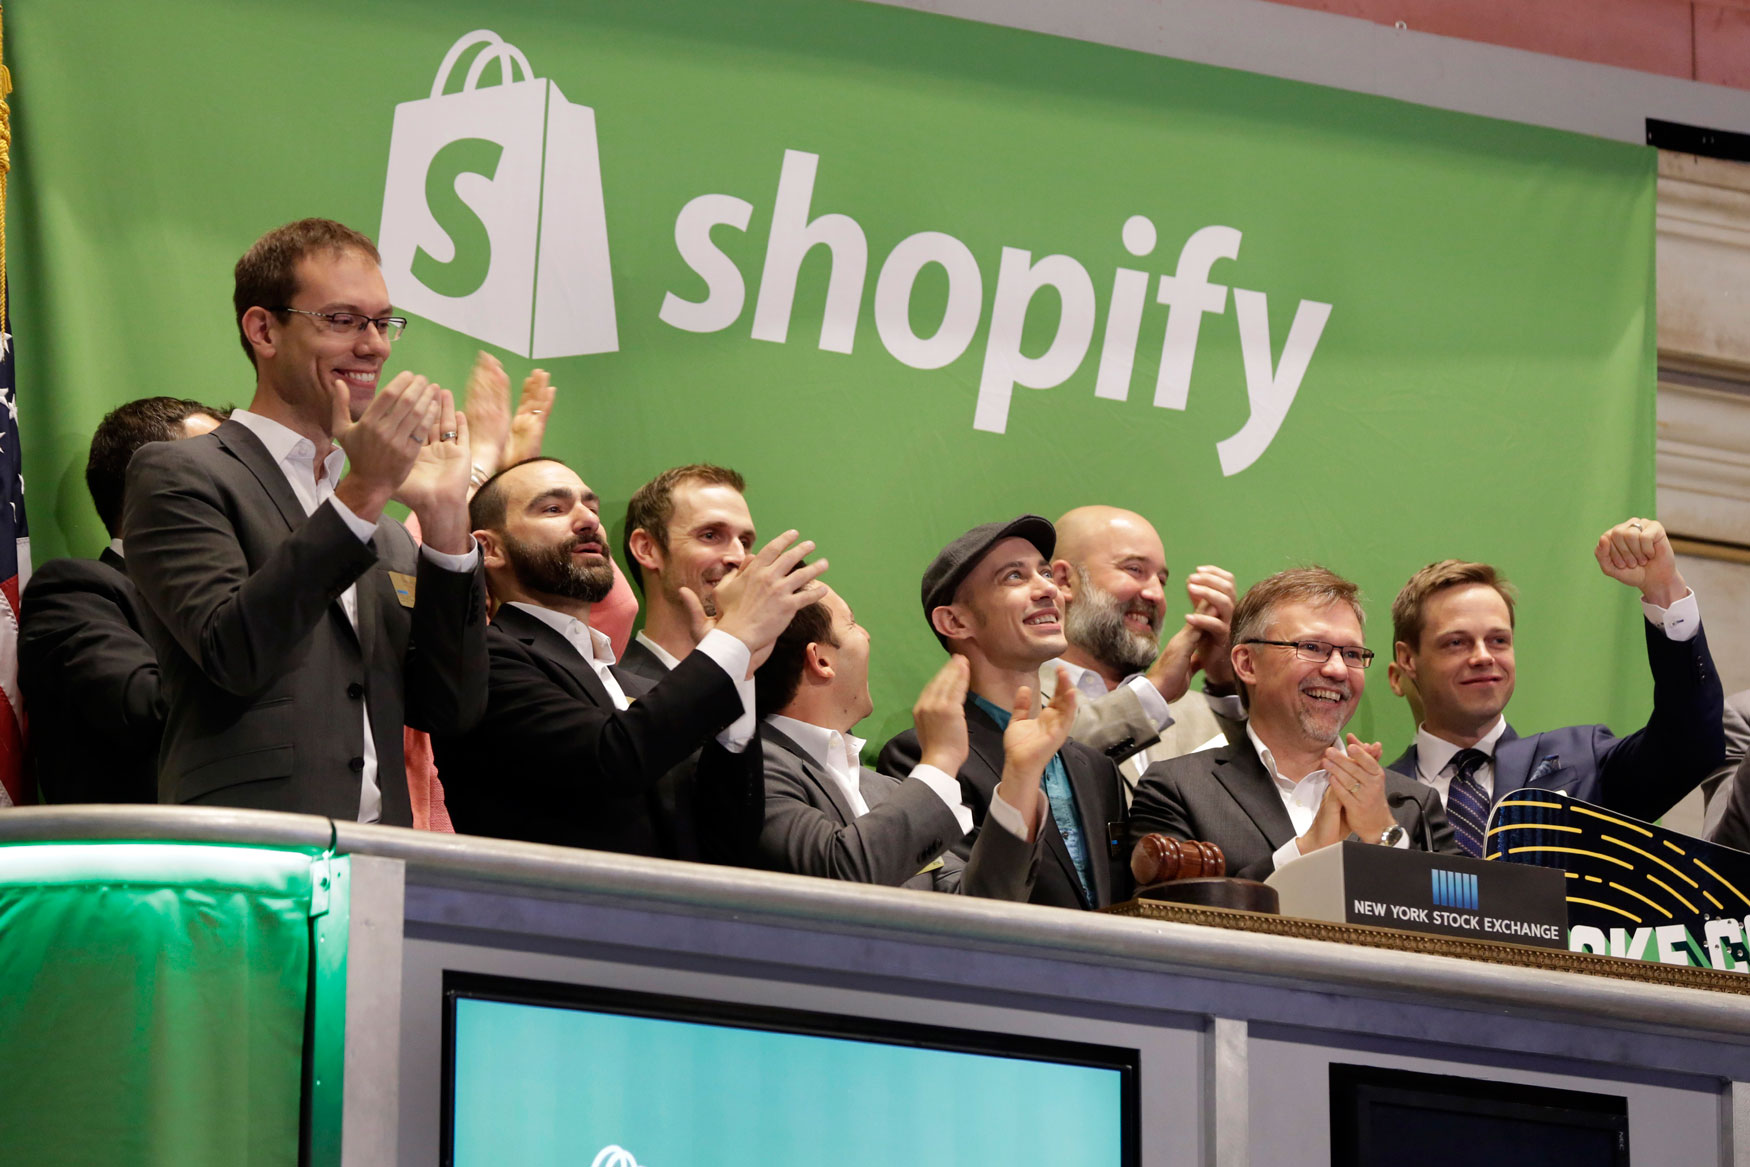 Shopify is one of Canada's biggest tech success stories.